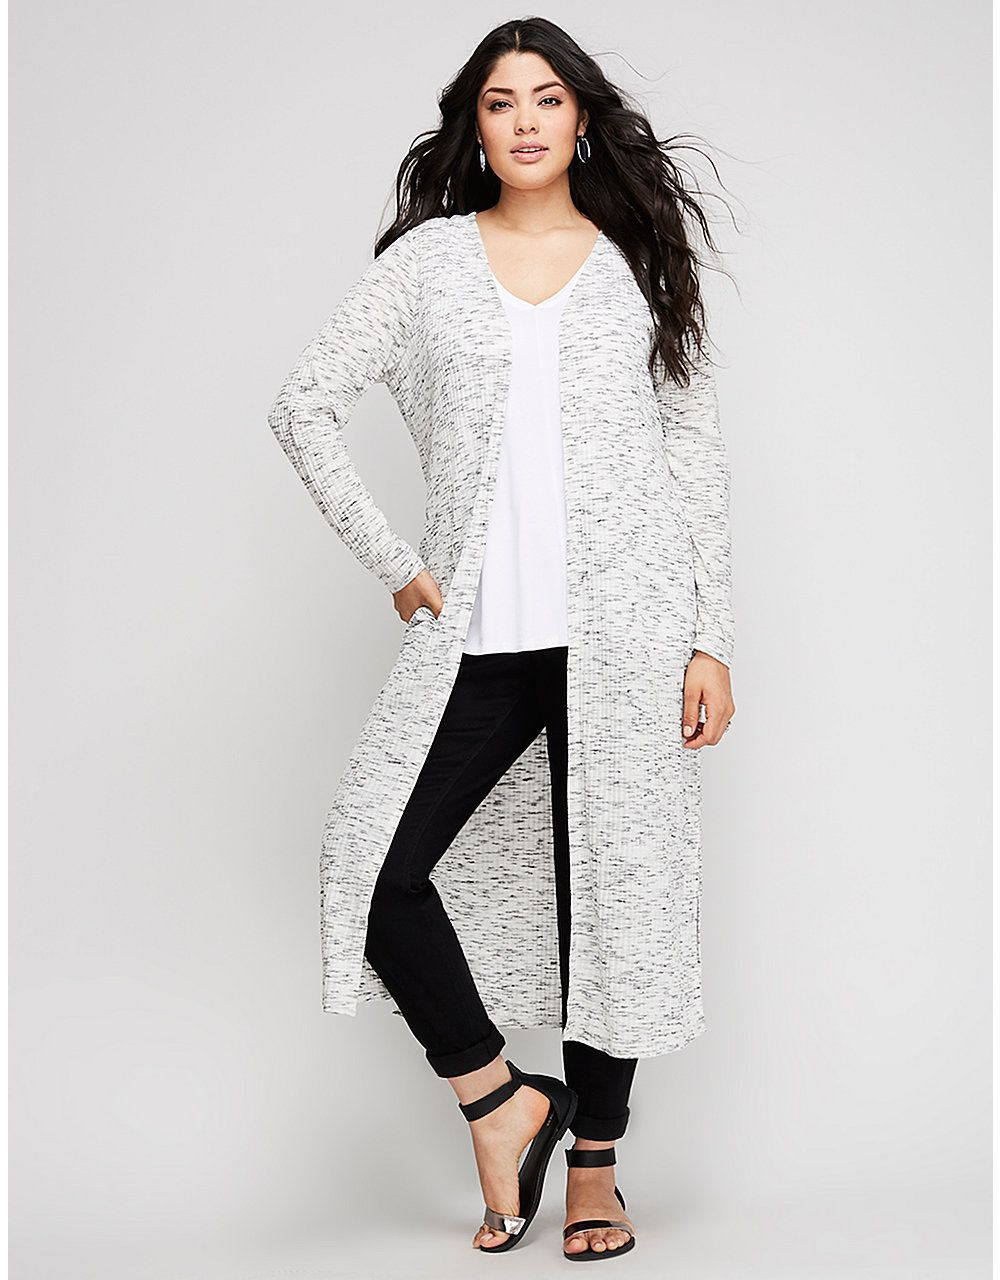 5d713de4478 Plus Size Fashion Tops For Women. Marled Duster Overpiece